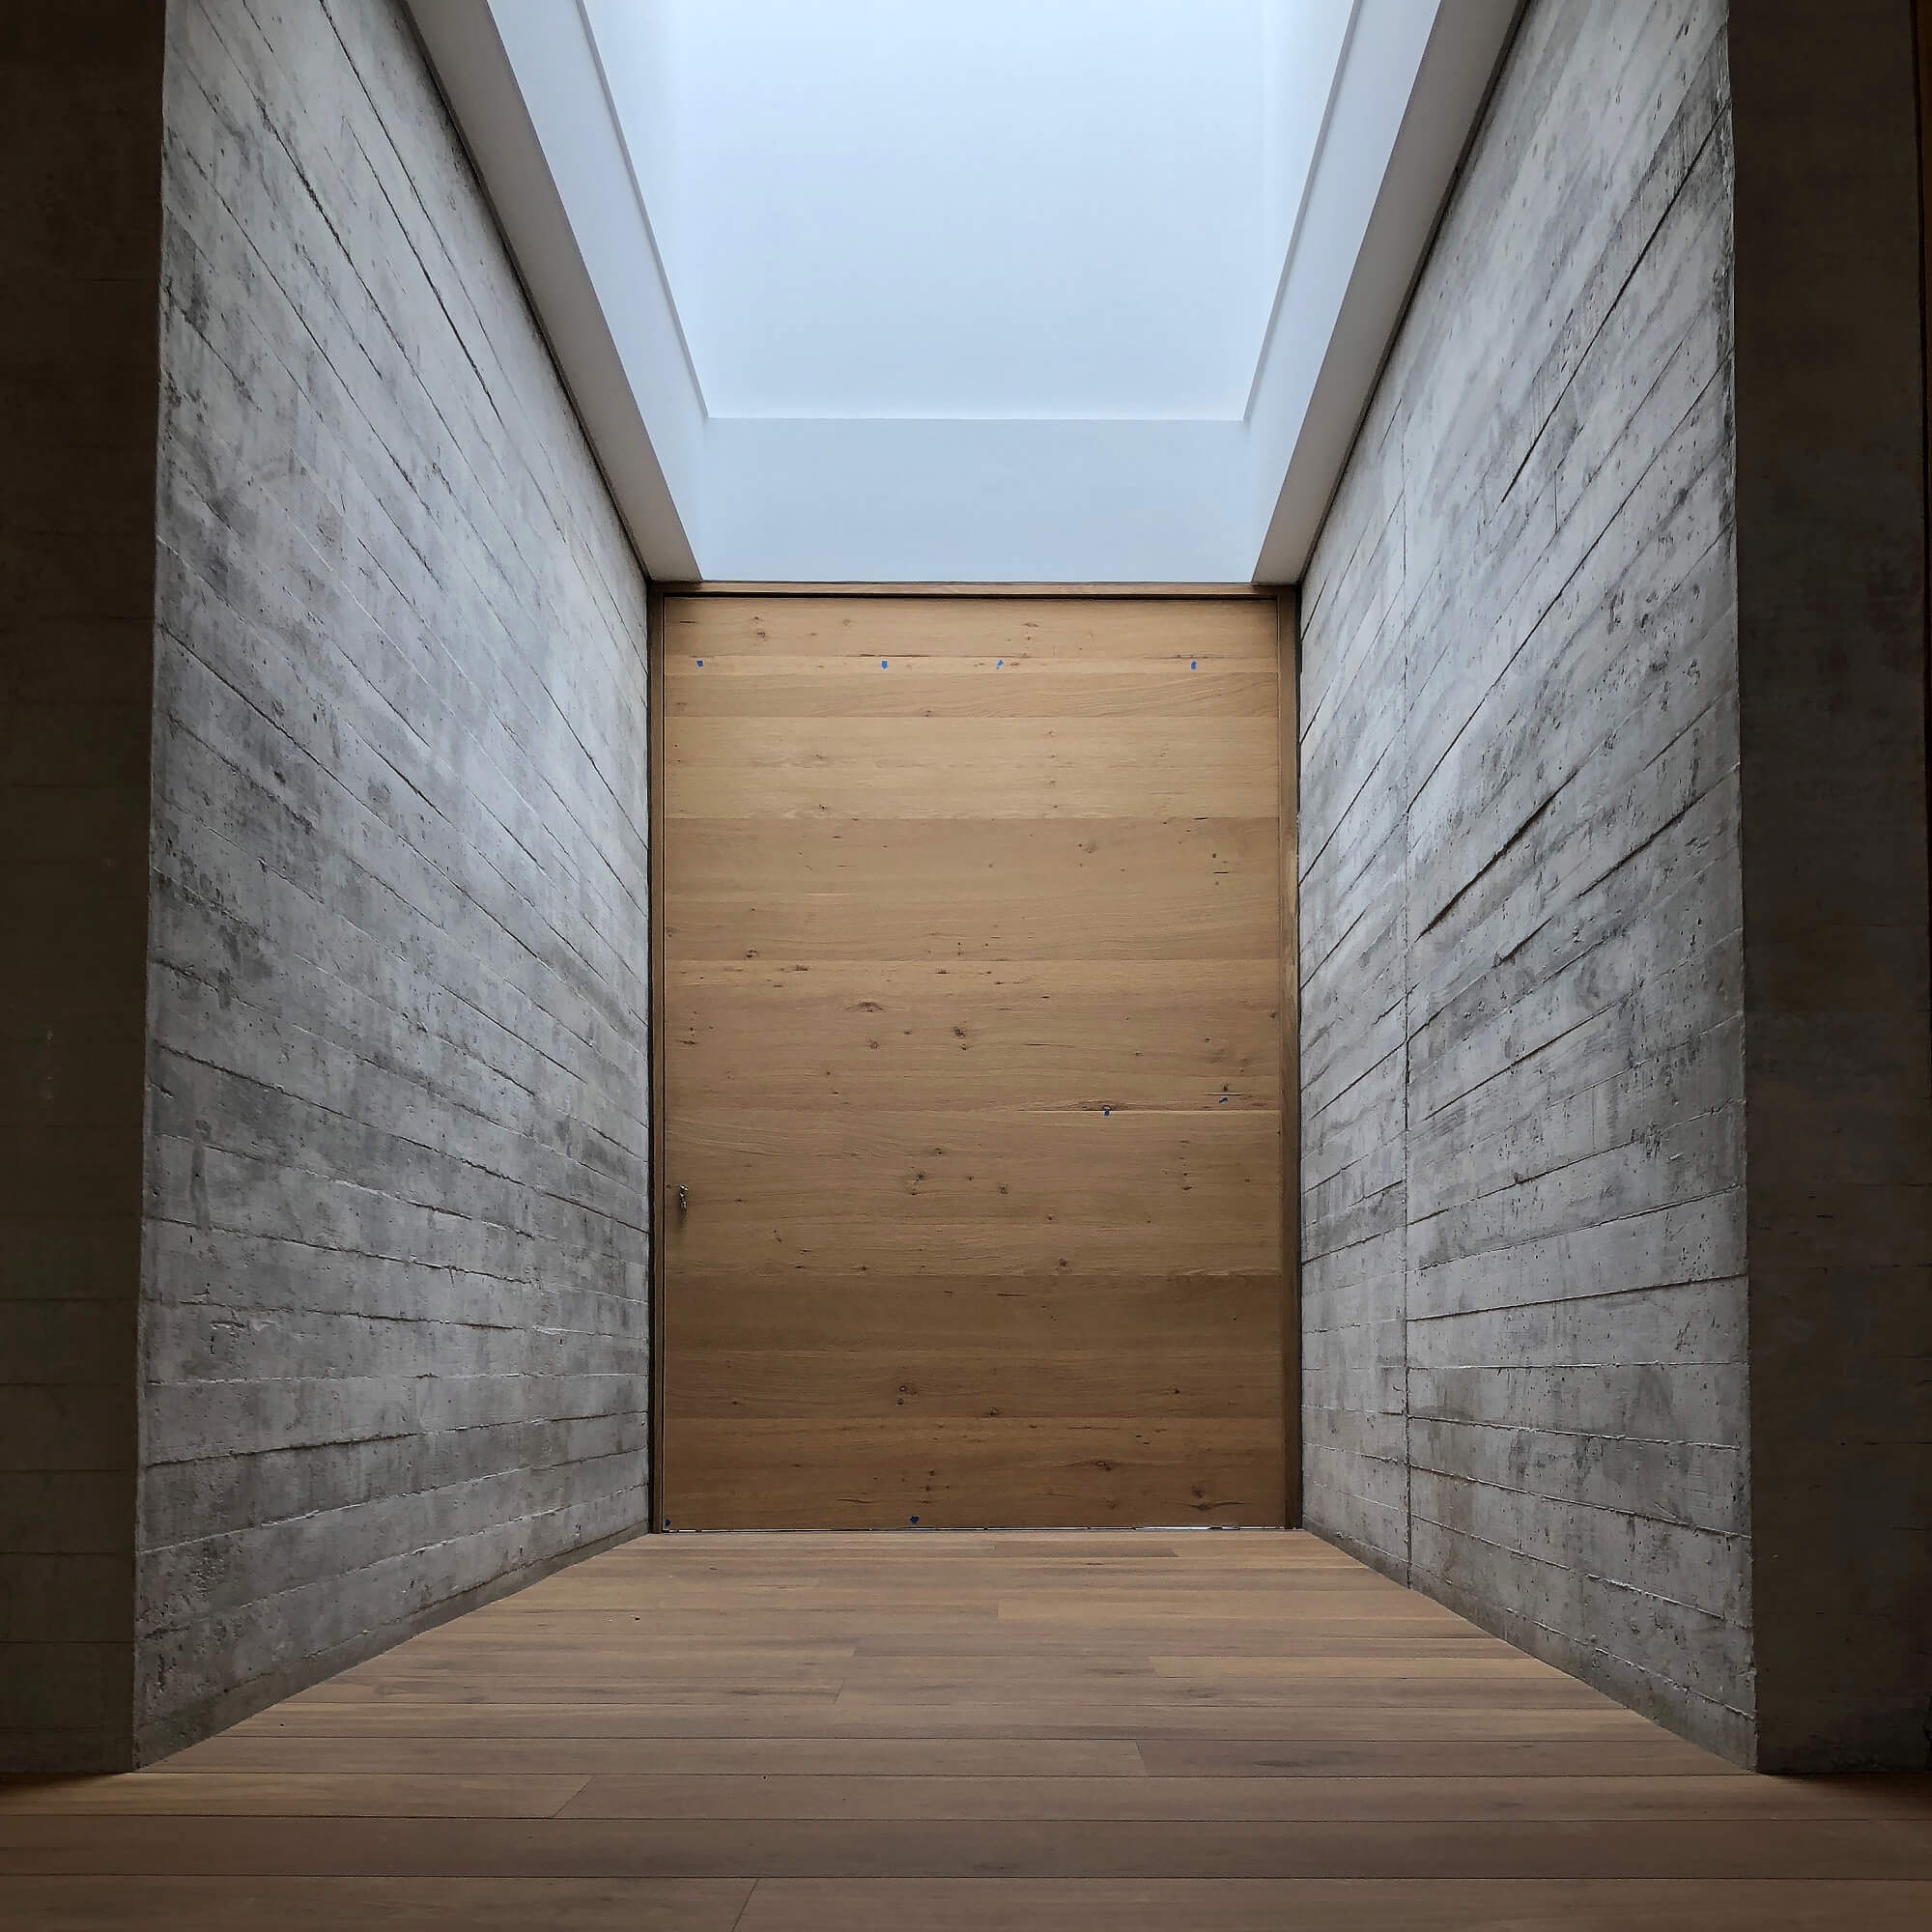 A concrete hallway with white oak flooring and door at the end.